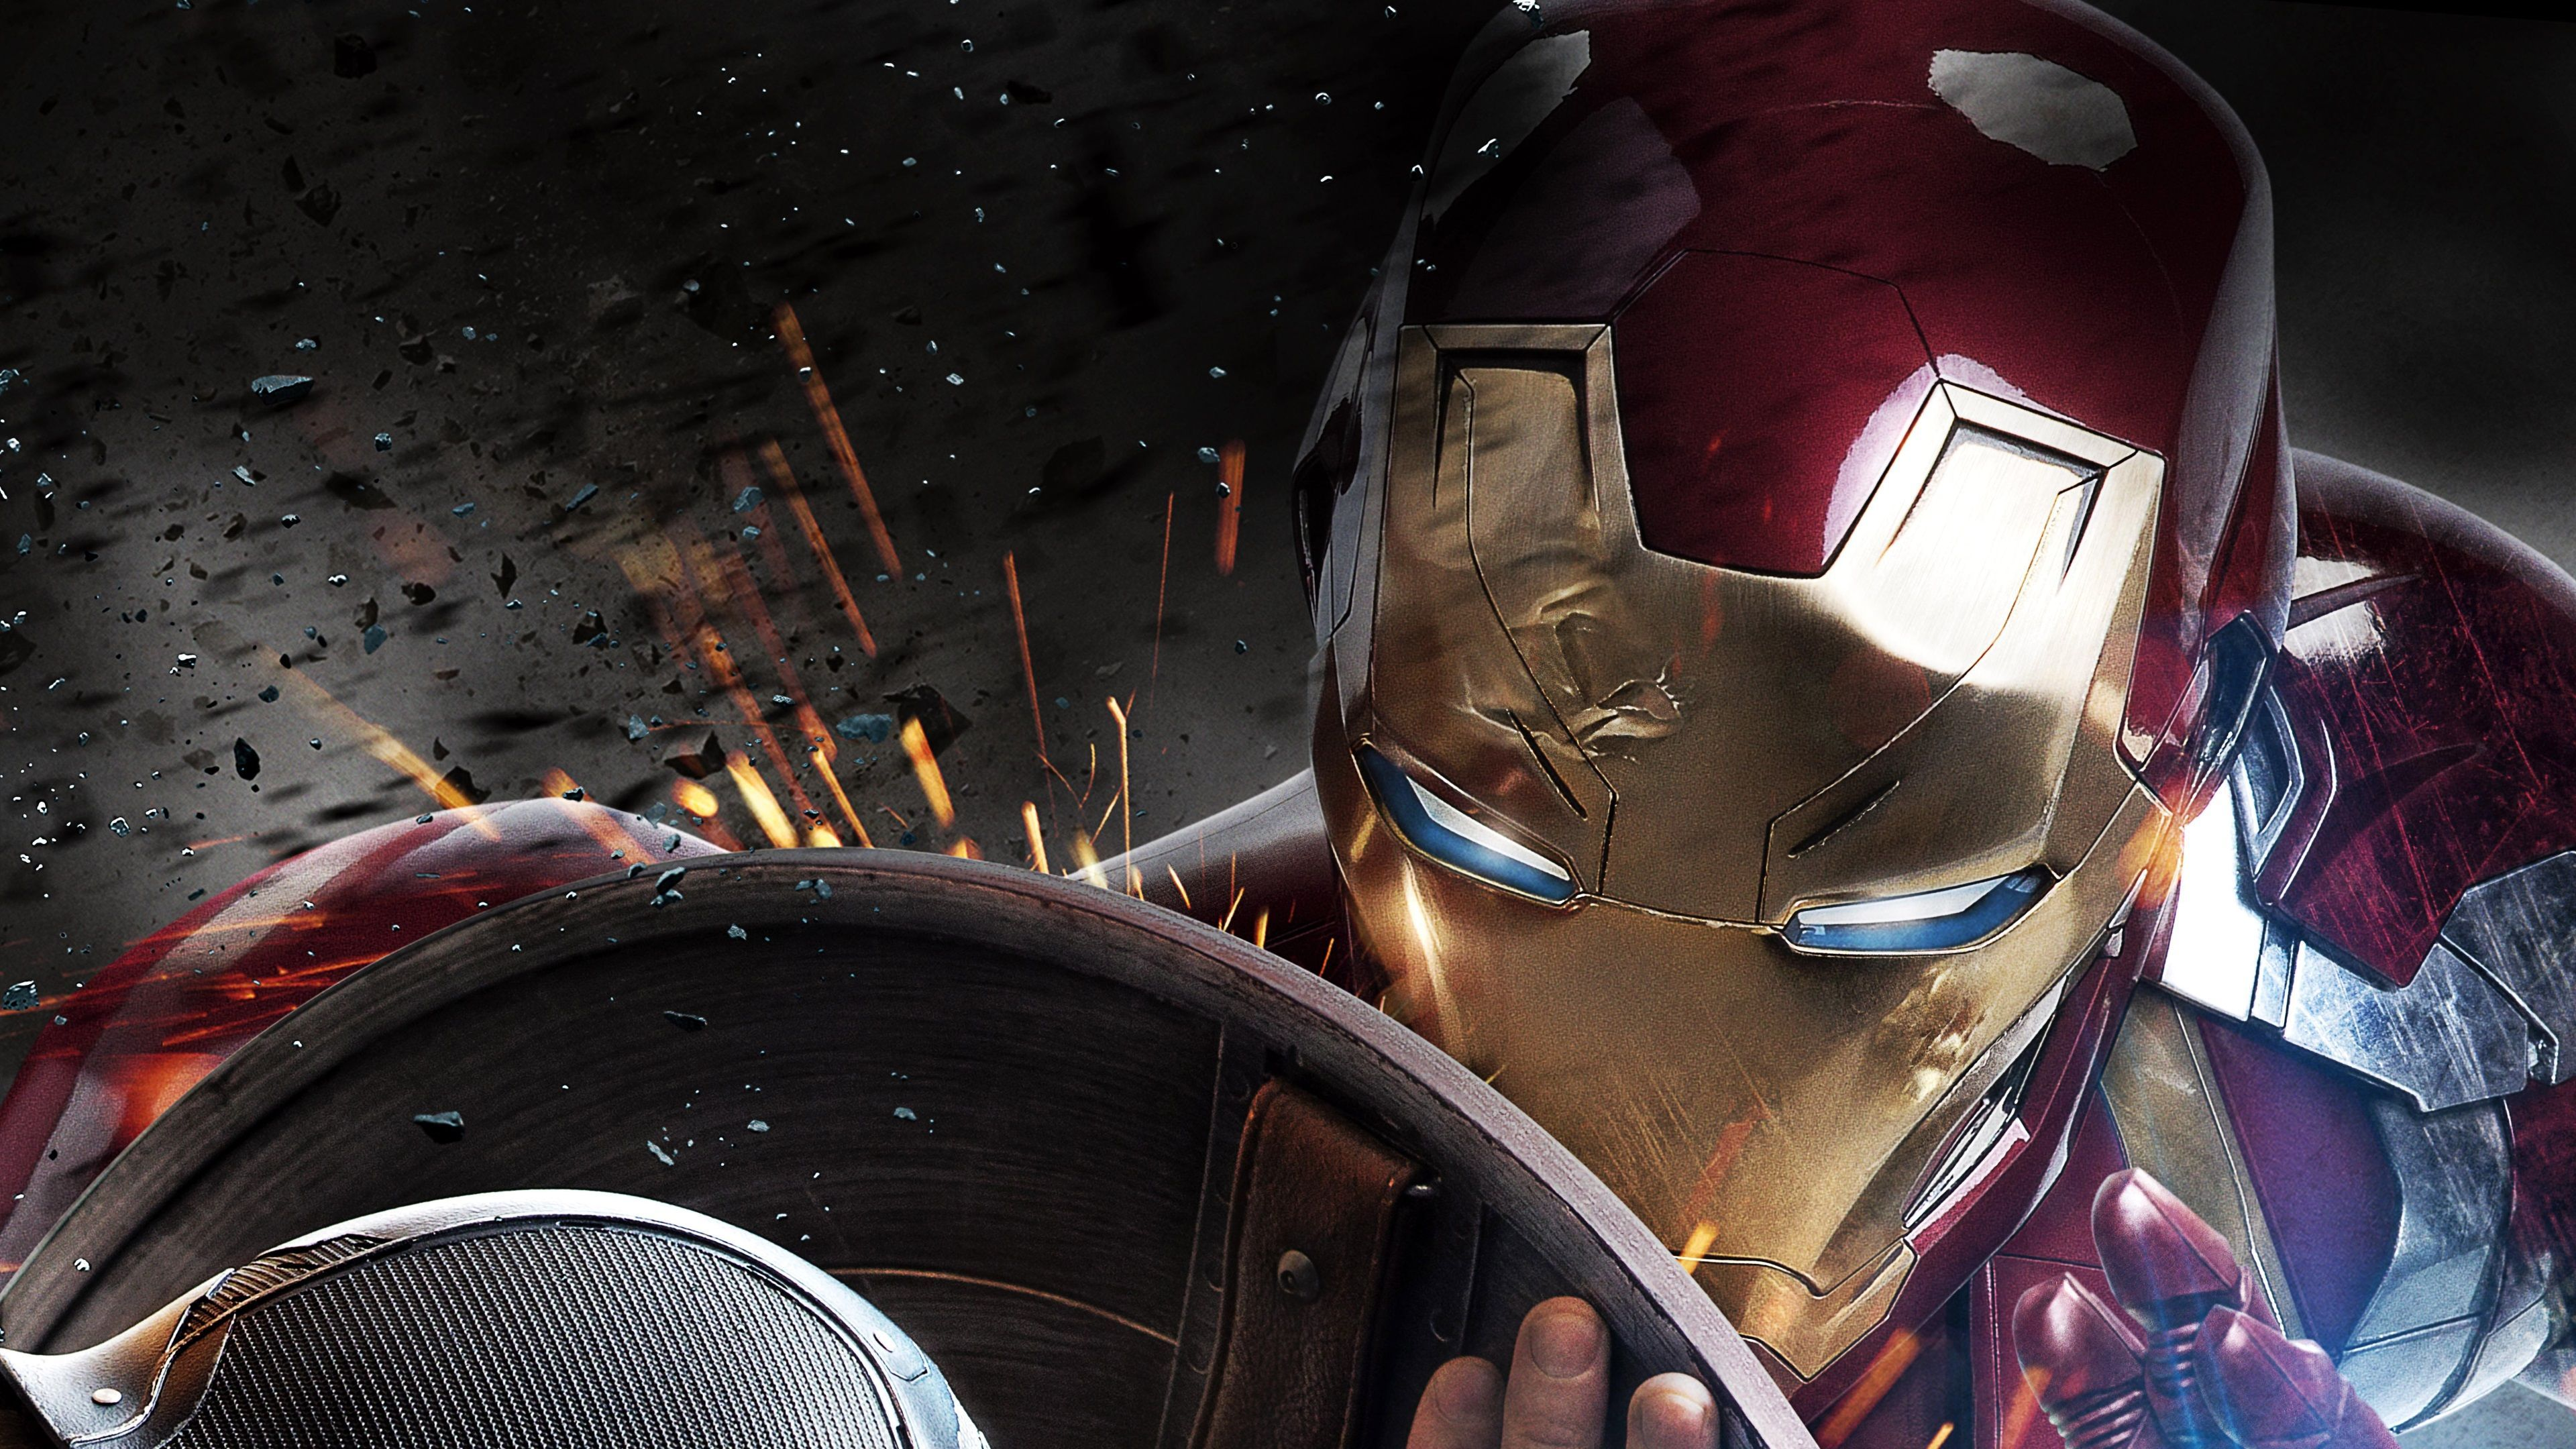 Download Wallpaper Android Hd Iron Man In 2021 Iron Man Wallpaper Iron Man Hd Wallpaper Superhero Wallpaper